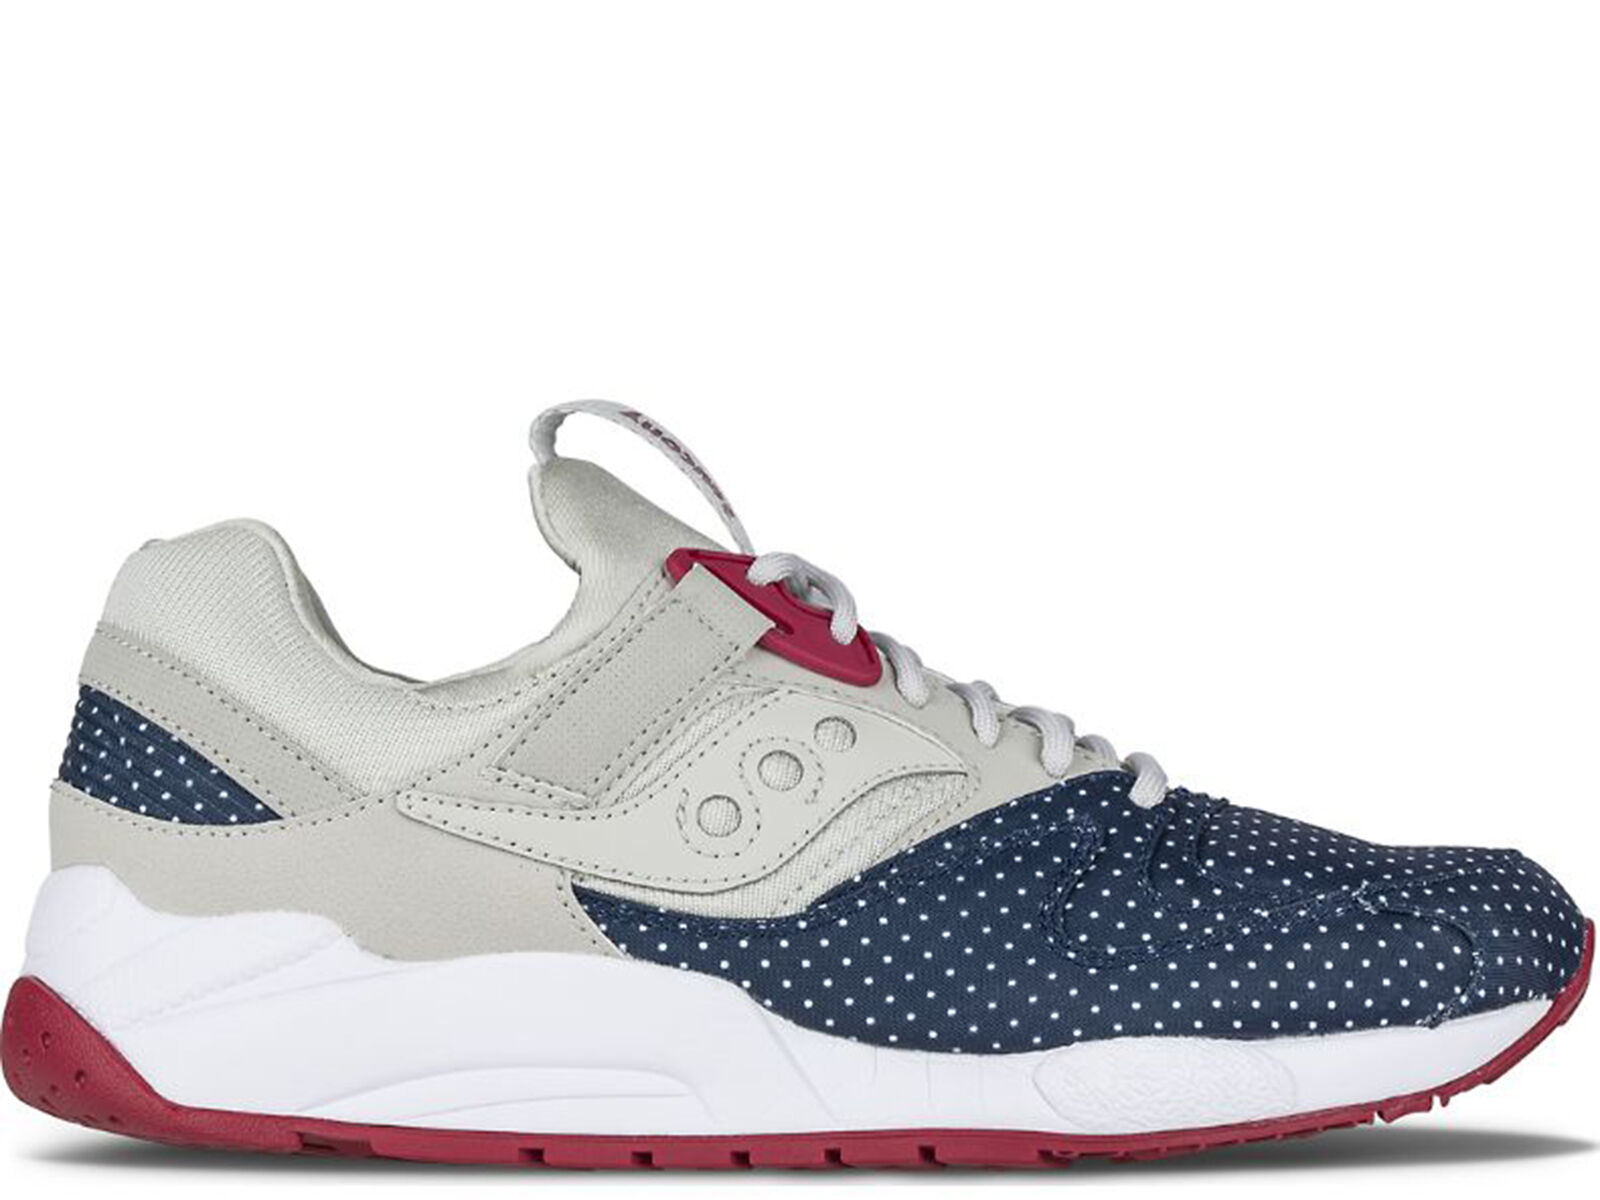 Brand New Saucony Grid 9000 Men's Athletic Fashion Sneakers [S70256-1]